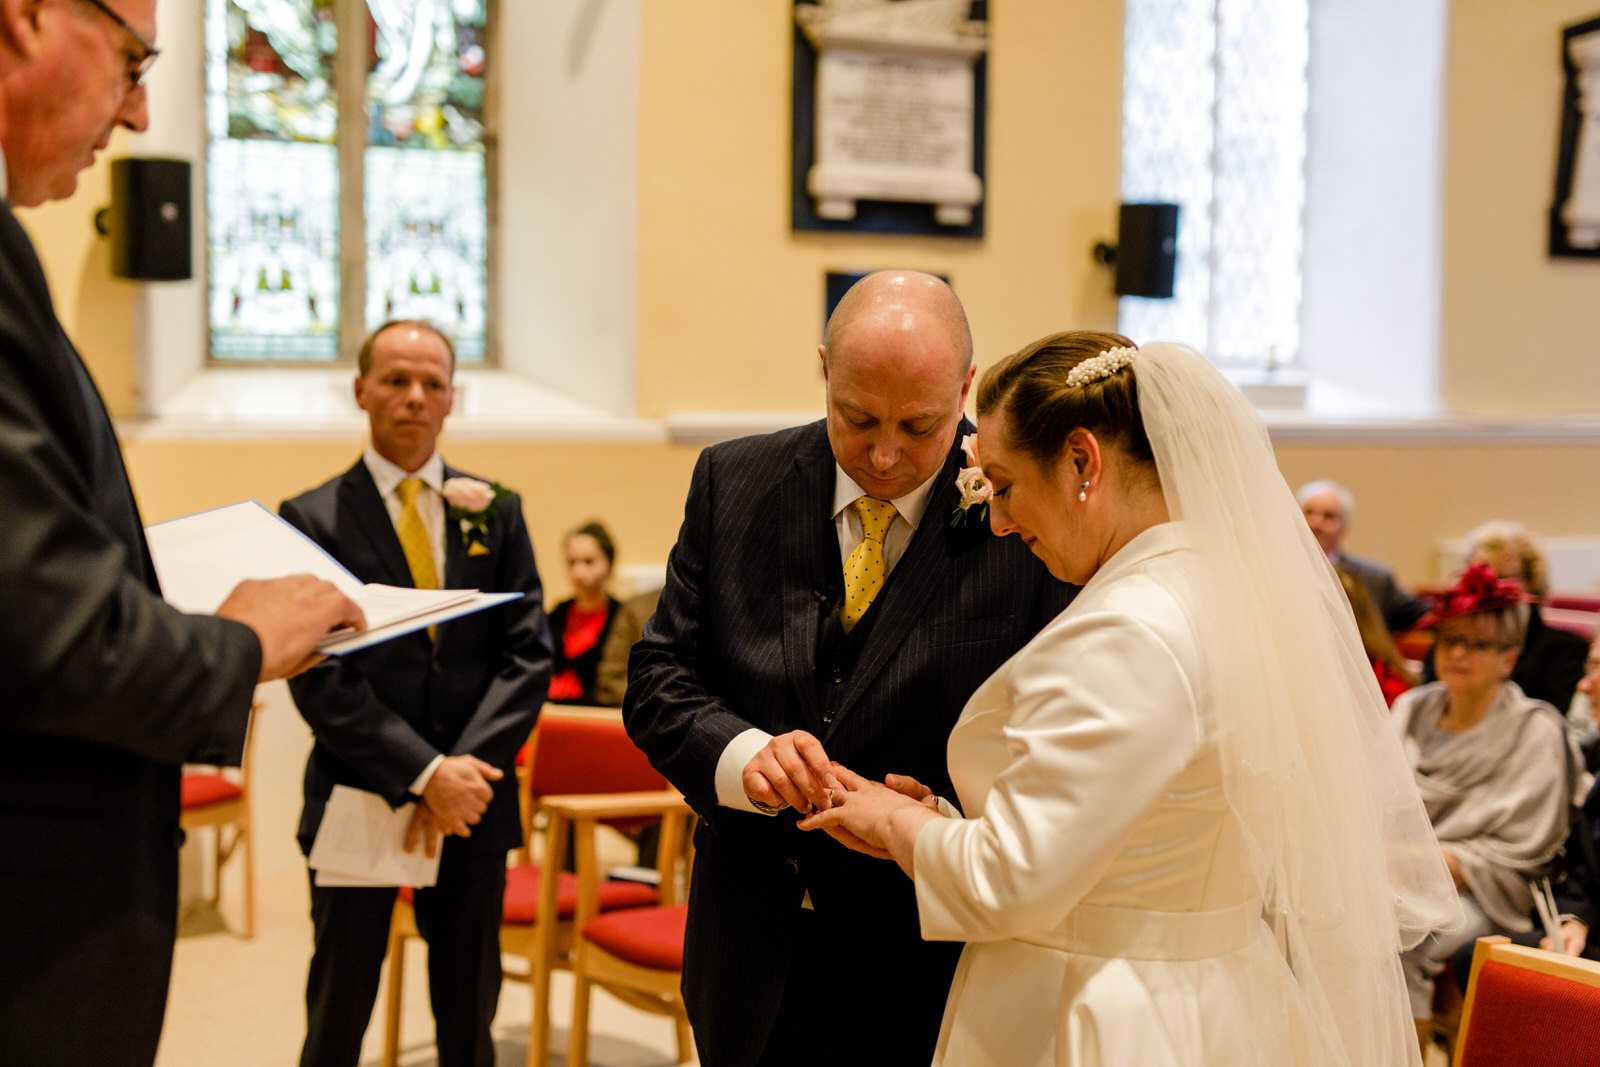 Roger-kenny-wedding-photographer-wicklow-glenview_033.jpg